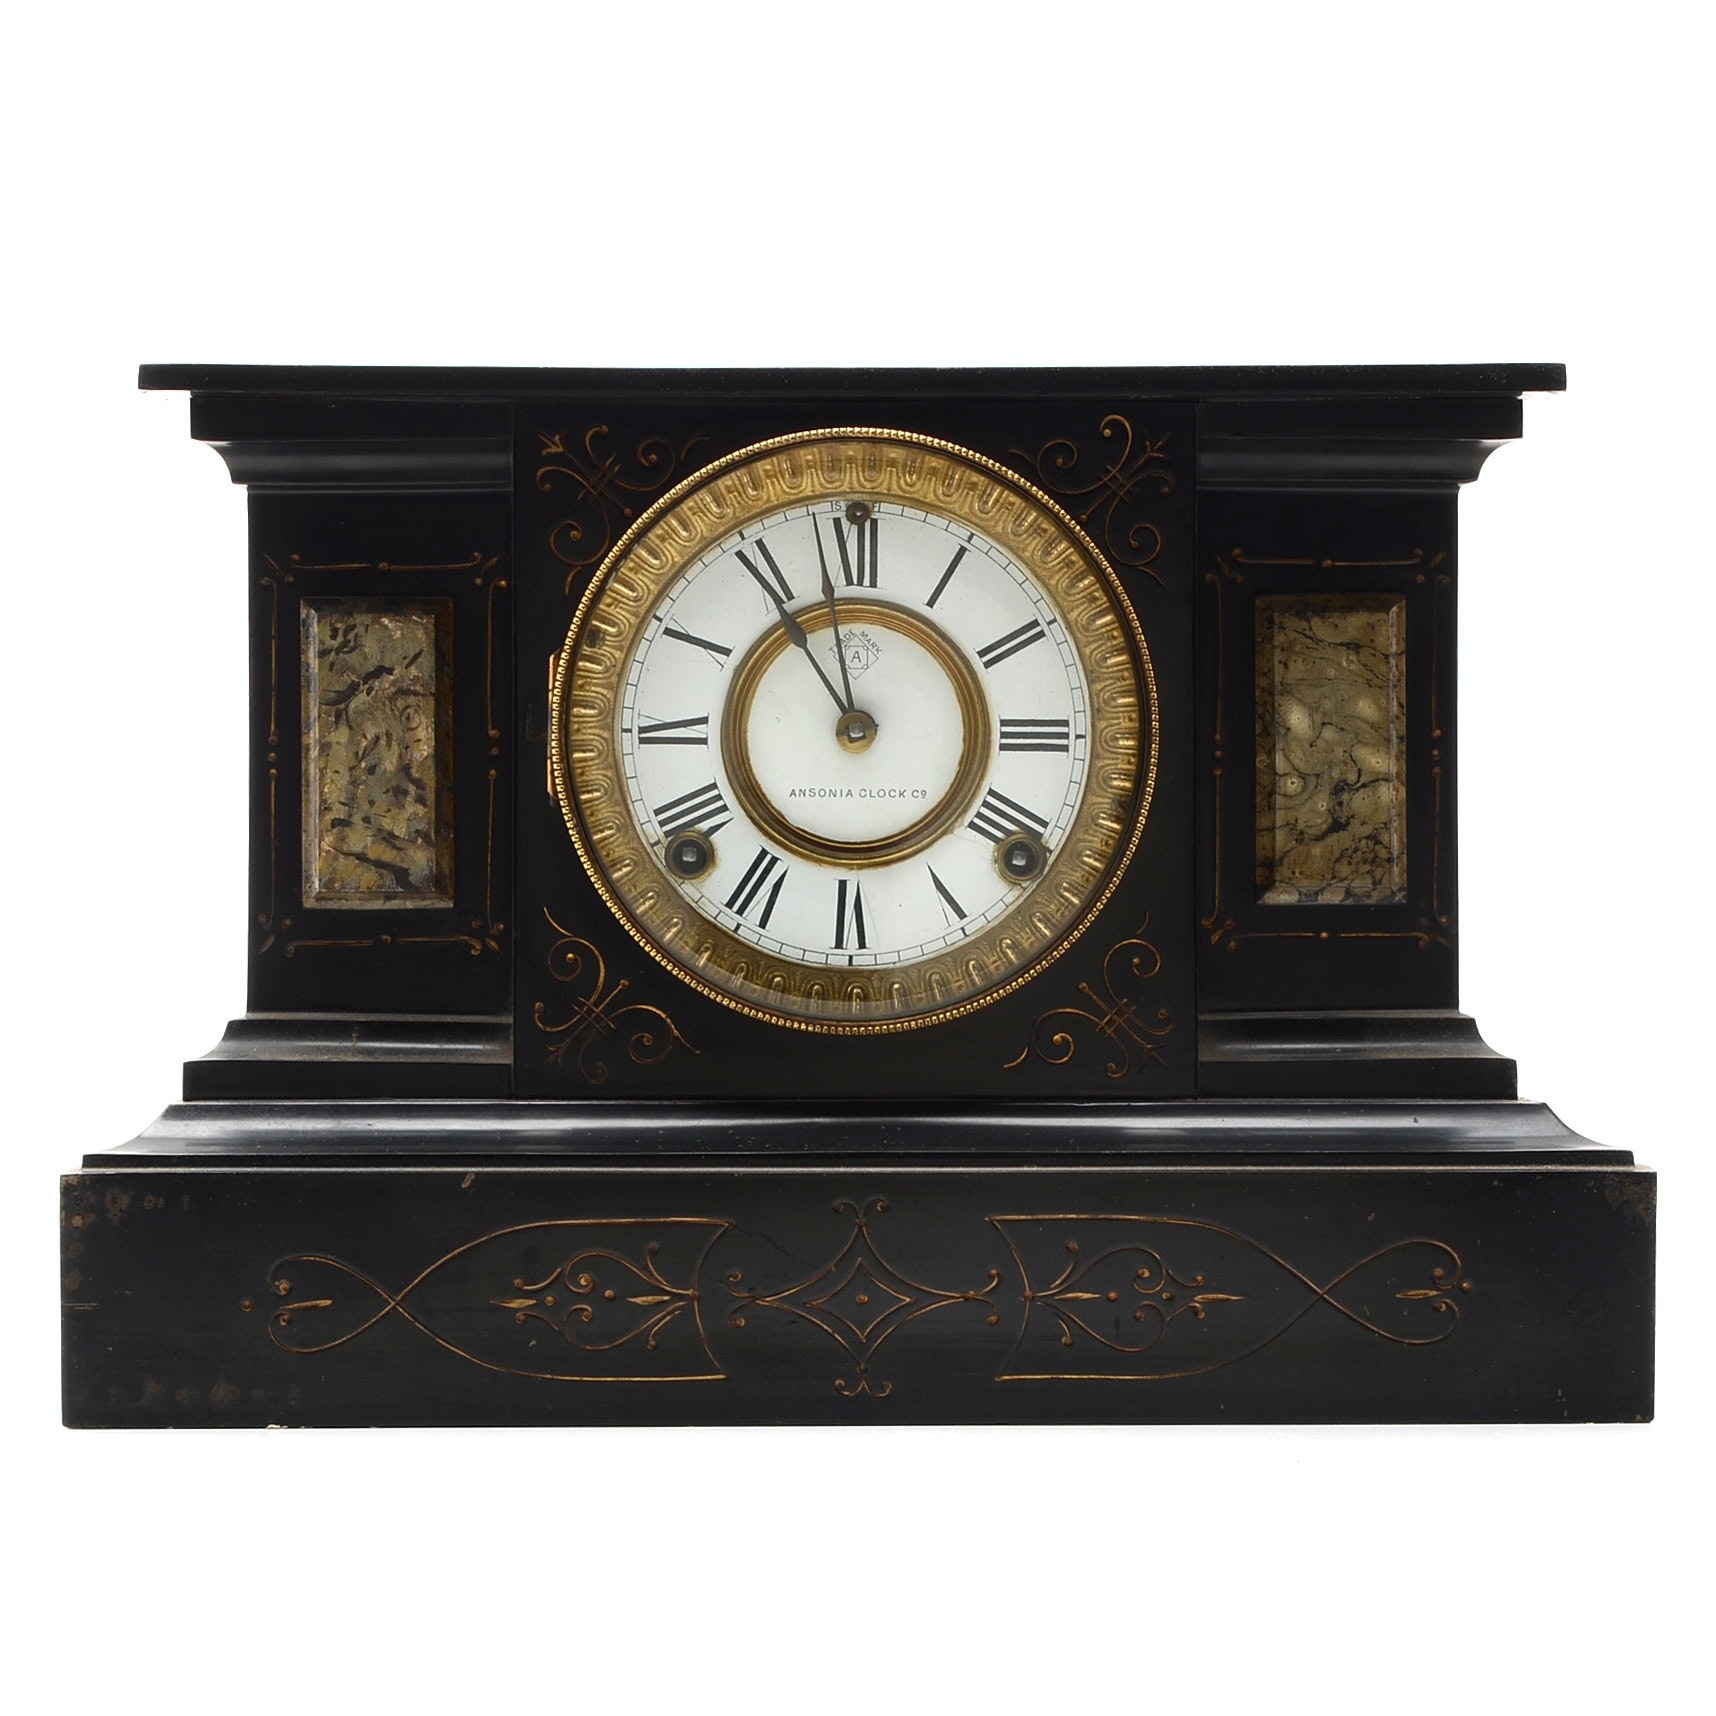 Antique Cast Iron Mantel Clock by Ansonia Clock Co., Late 19th Century